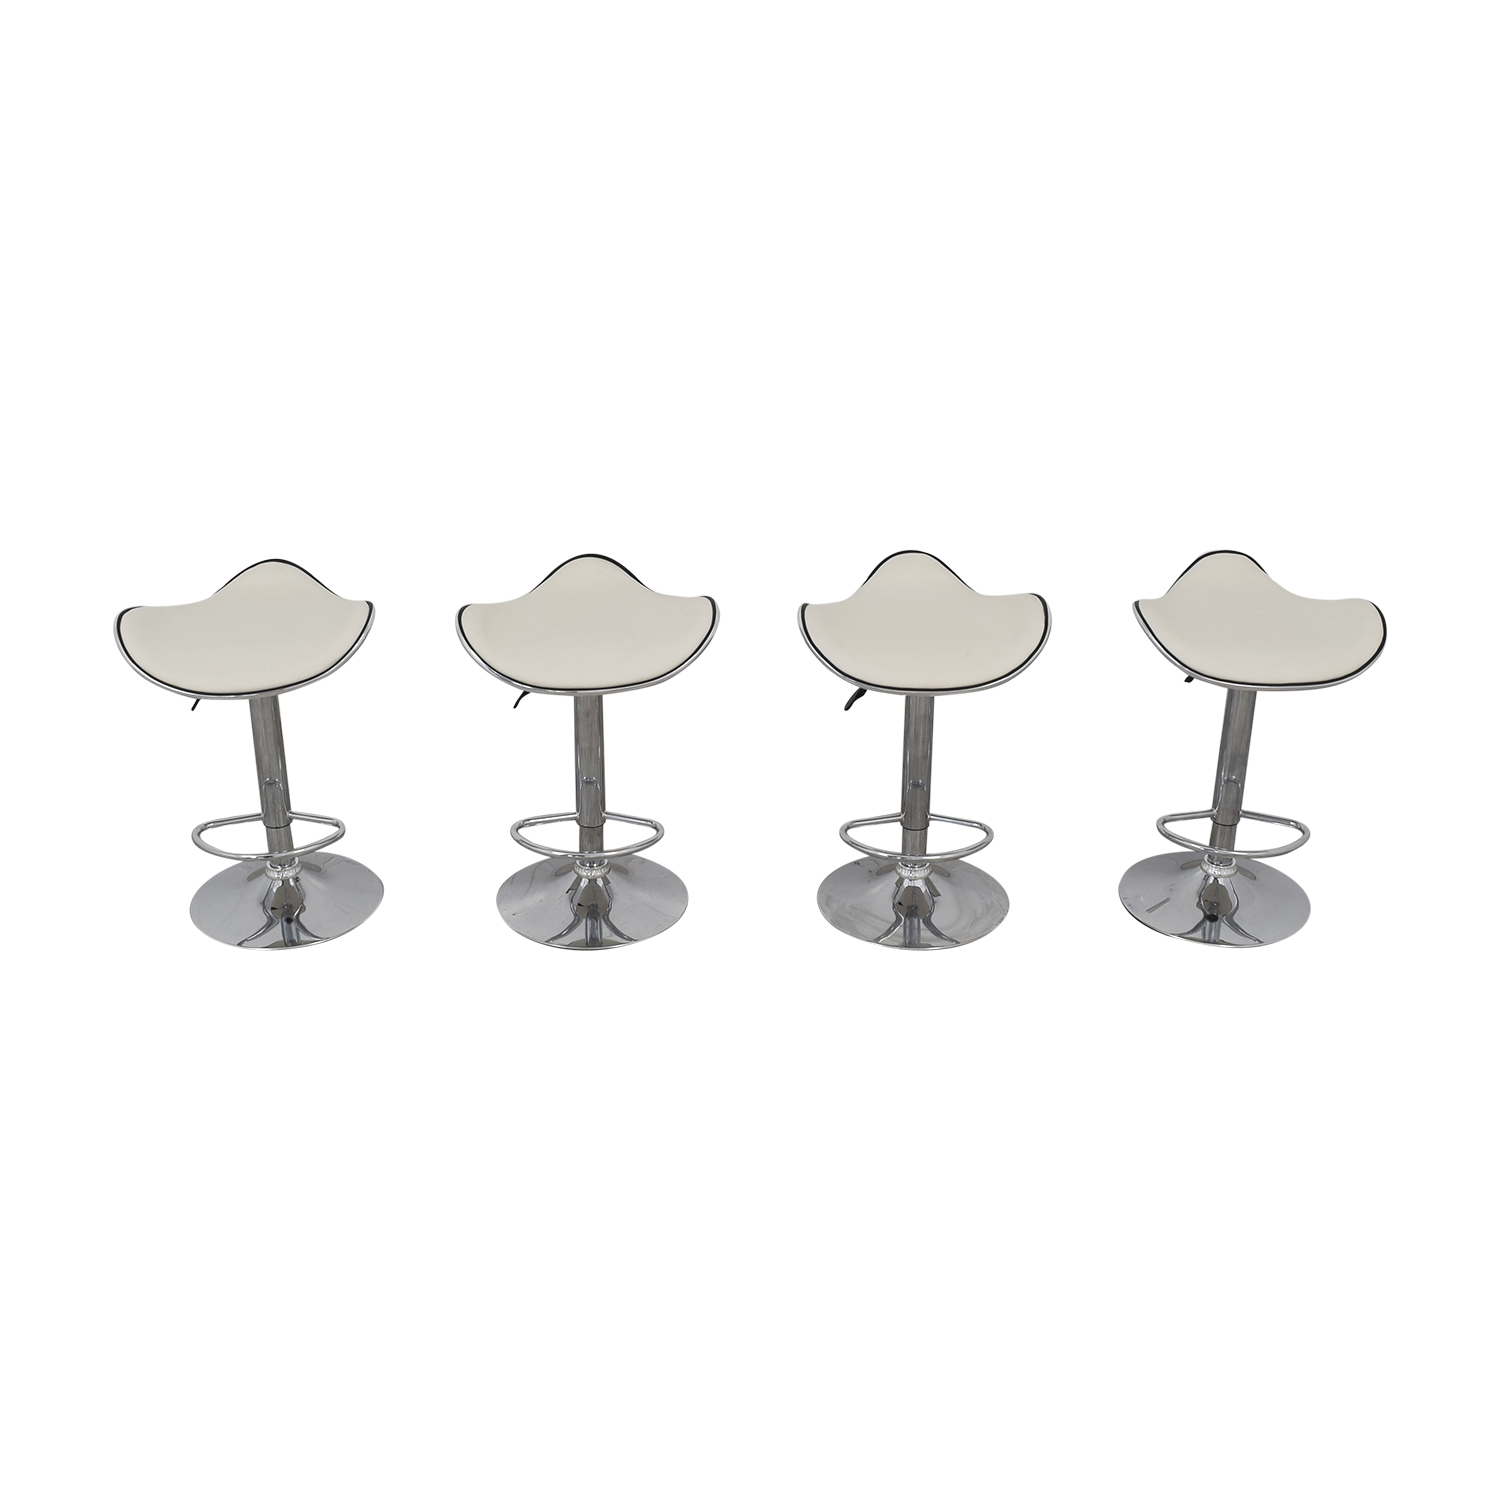 buy Houzz Adjustable Bar Stools Houzz Stools